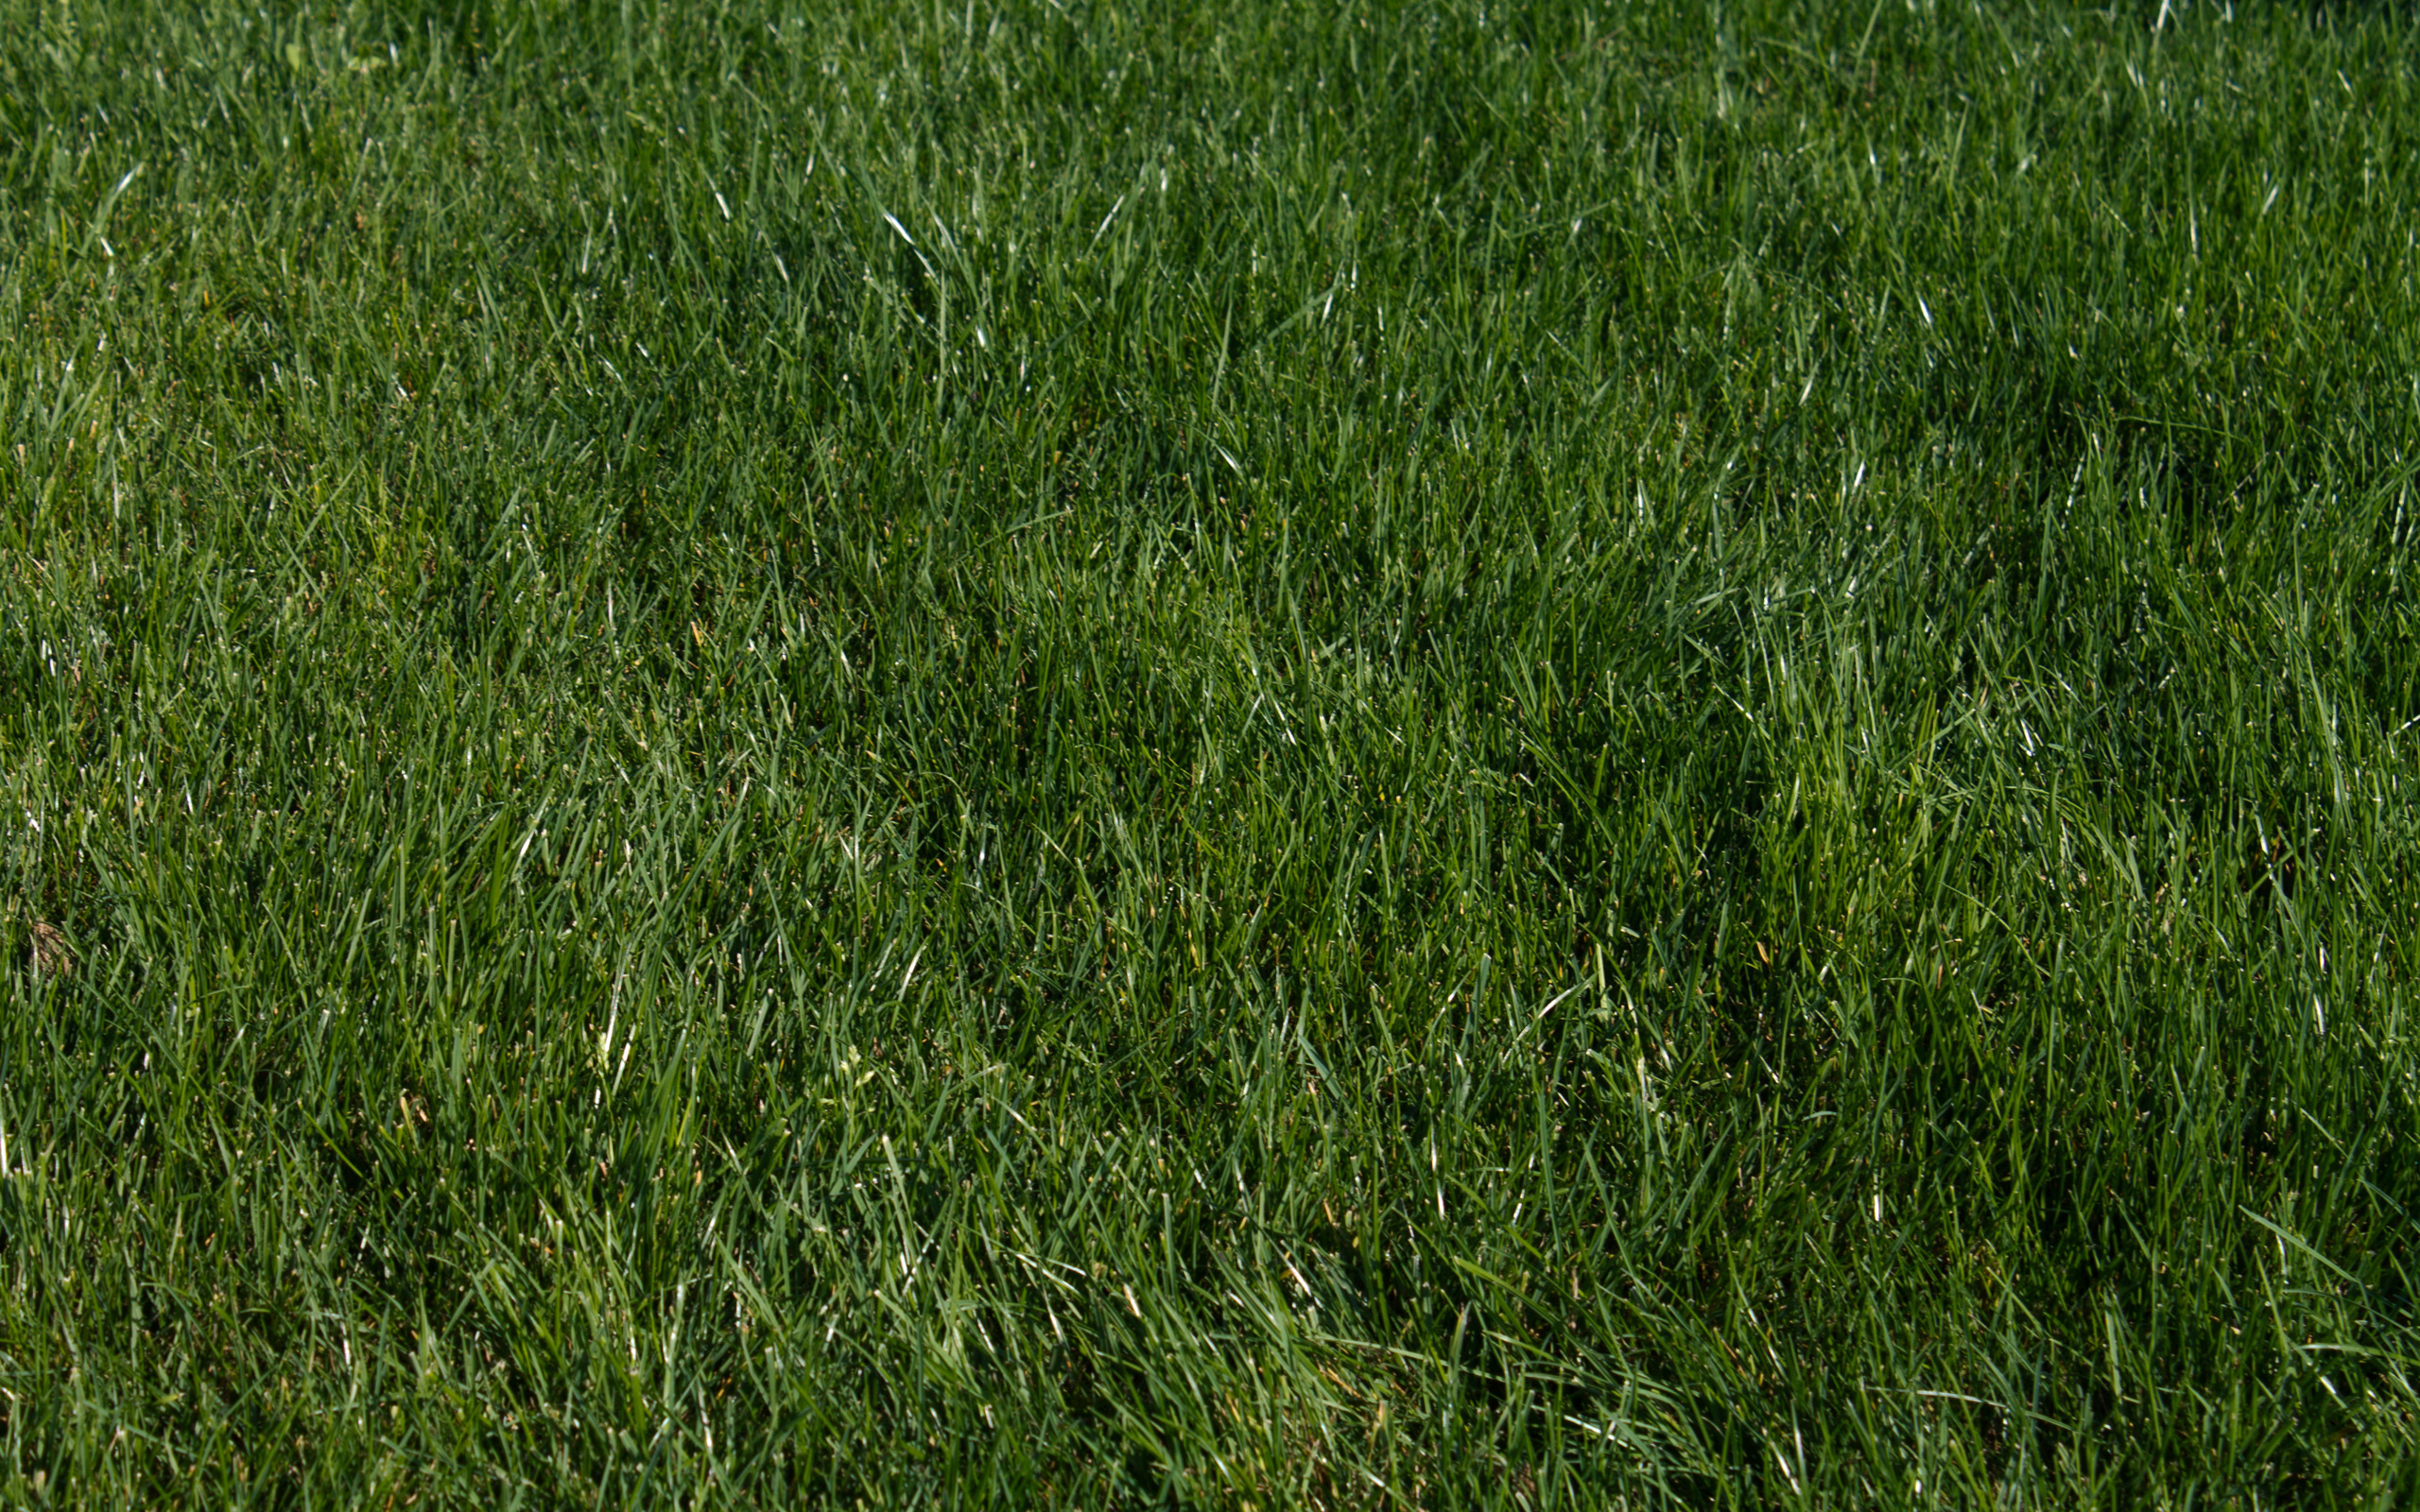 ... Green grass background 2560x1600